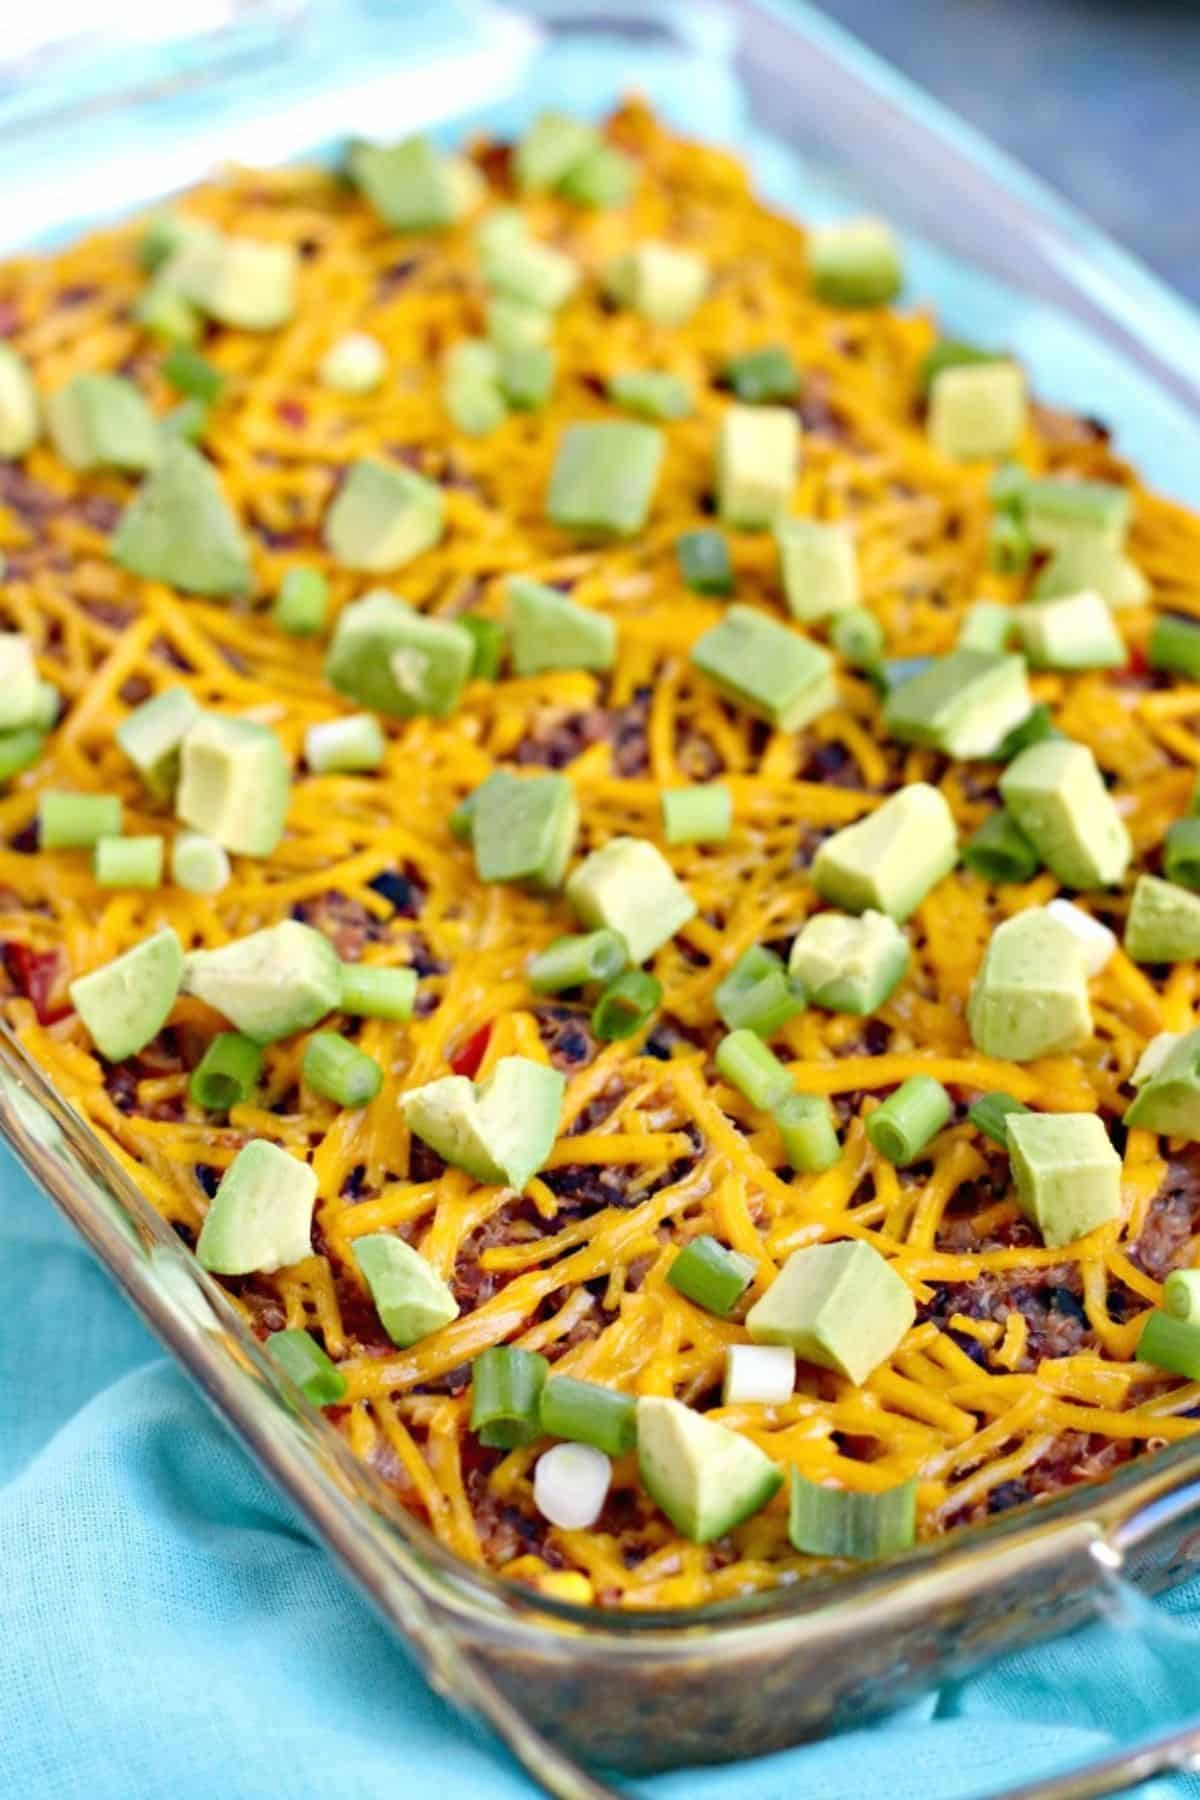 Baked casserole topped with sliced green onions and cubed avocado